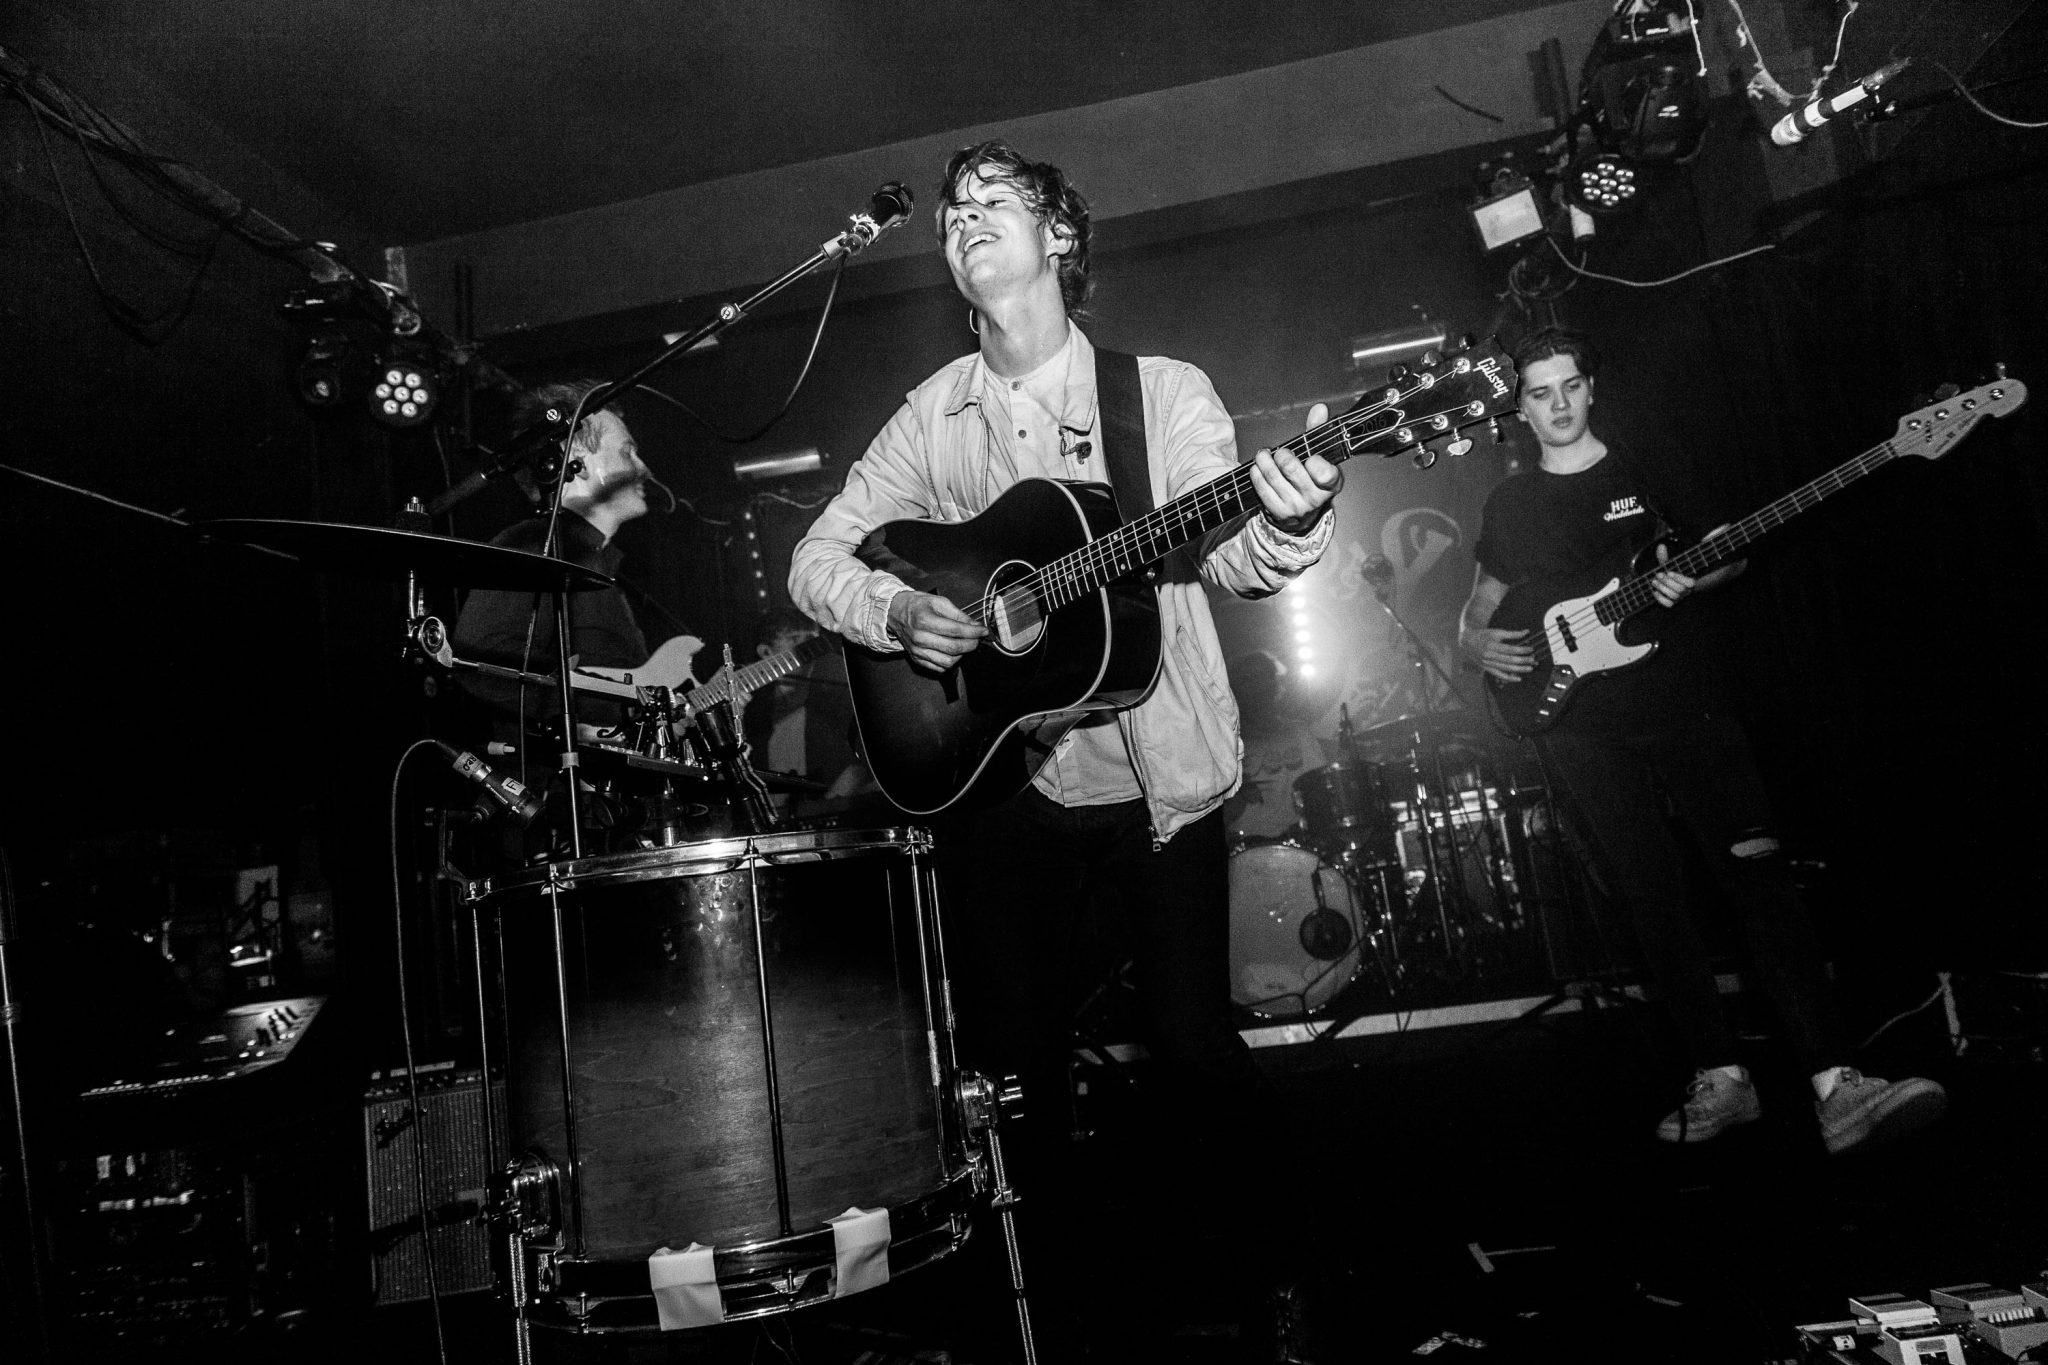 manchester london music photographer giant rooks